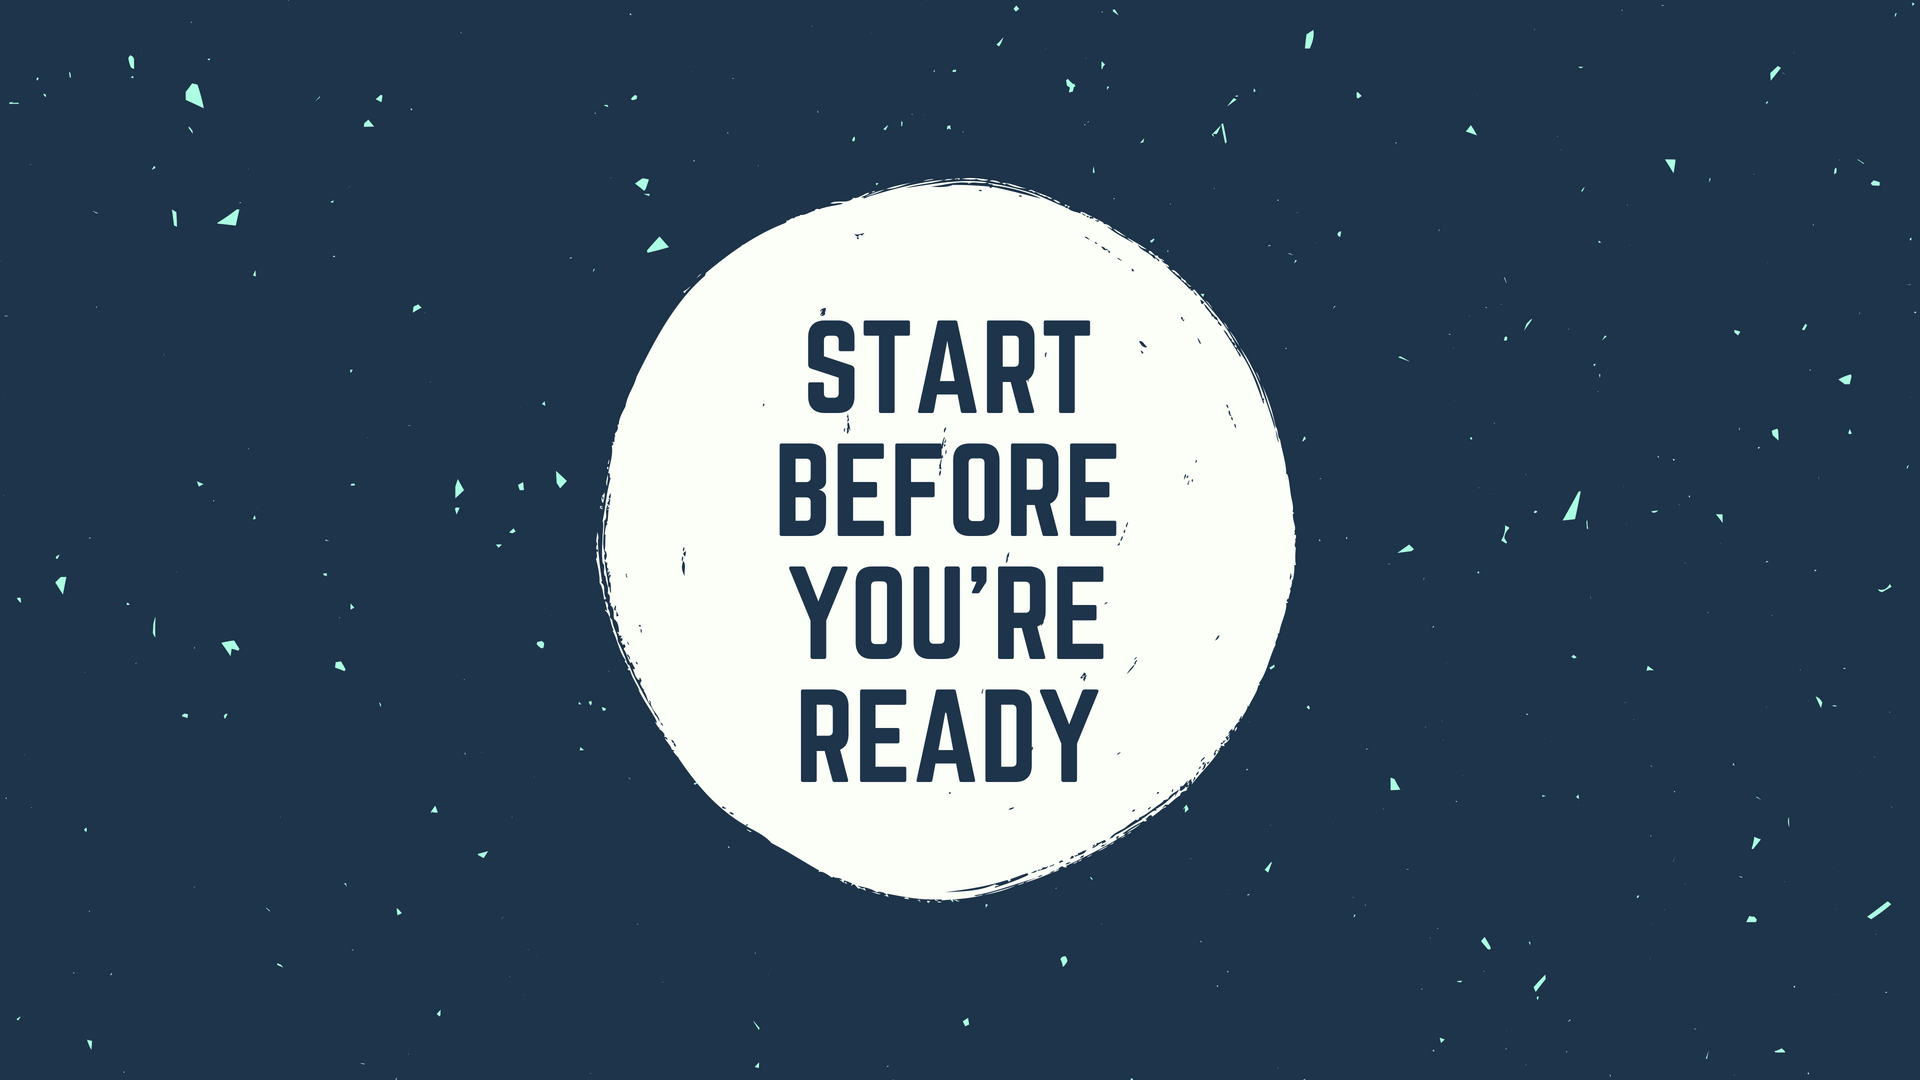 Type 5 - Start Before You're Ready